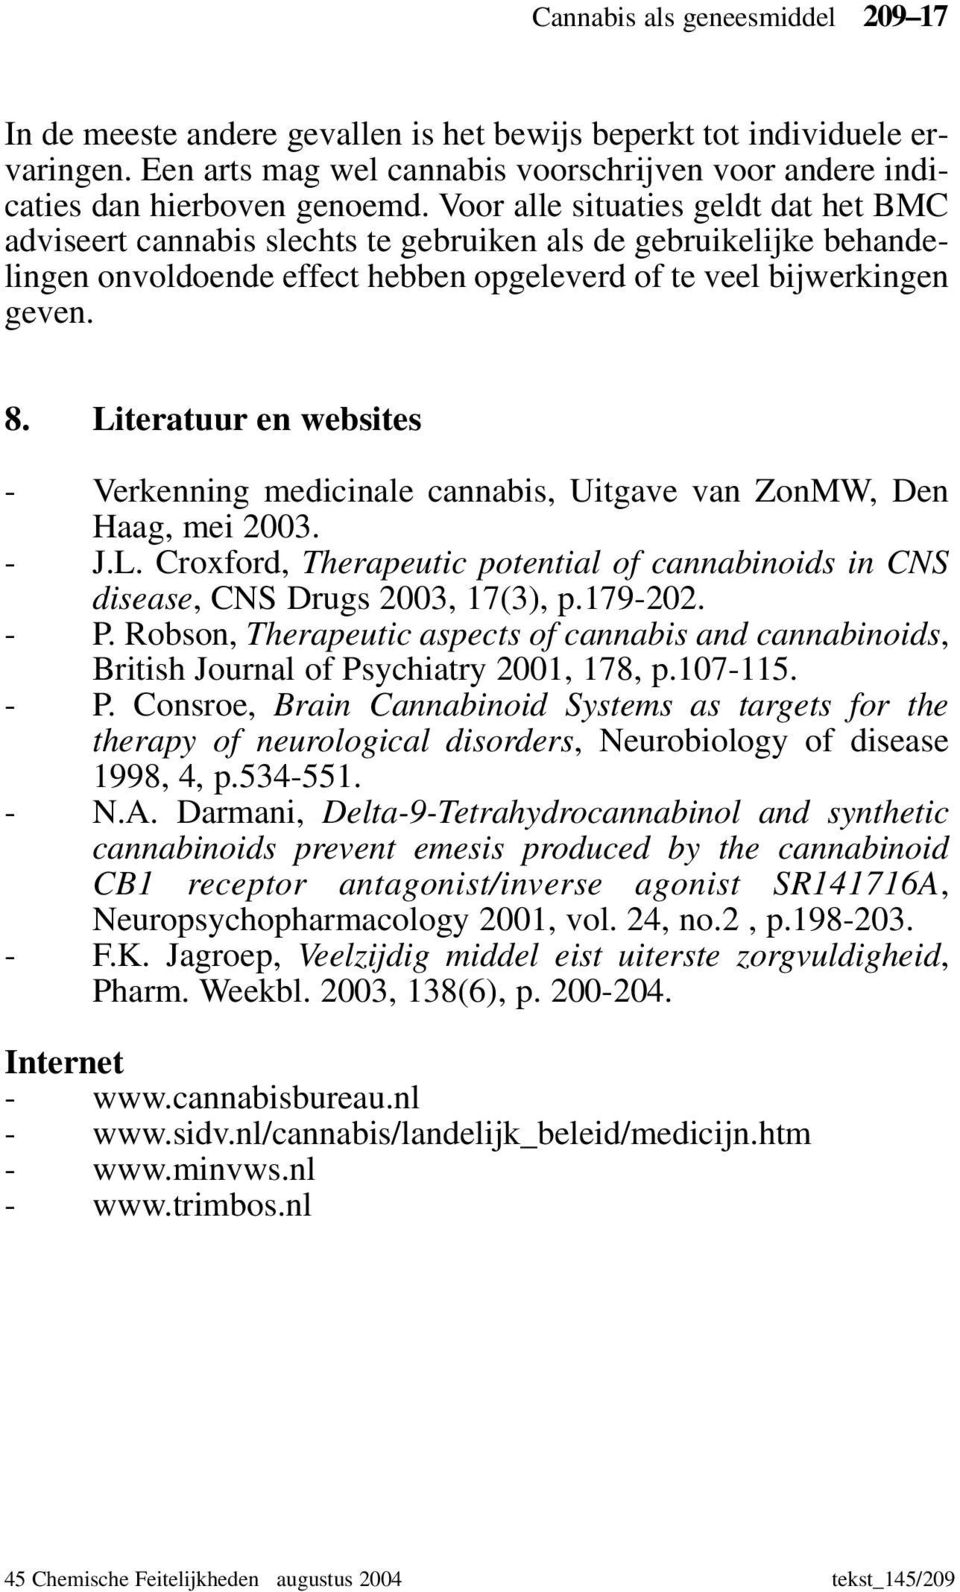 Literatuur en websites - Verkenning medicinale cannabis, Uitgave van ZonMW, Den Haag, mei 2003. - J.L. Croxford, Therapeutic potential of cannabinoids in CNS disease, CNS Drugs 2003, 17(3), p.179-202.